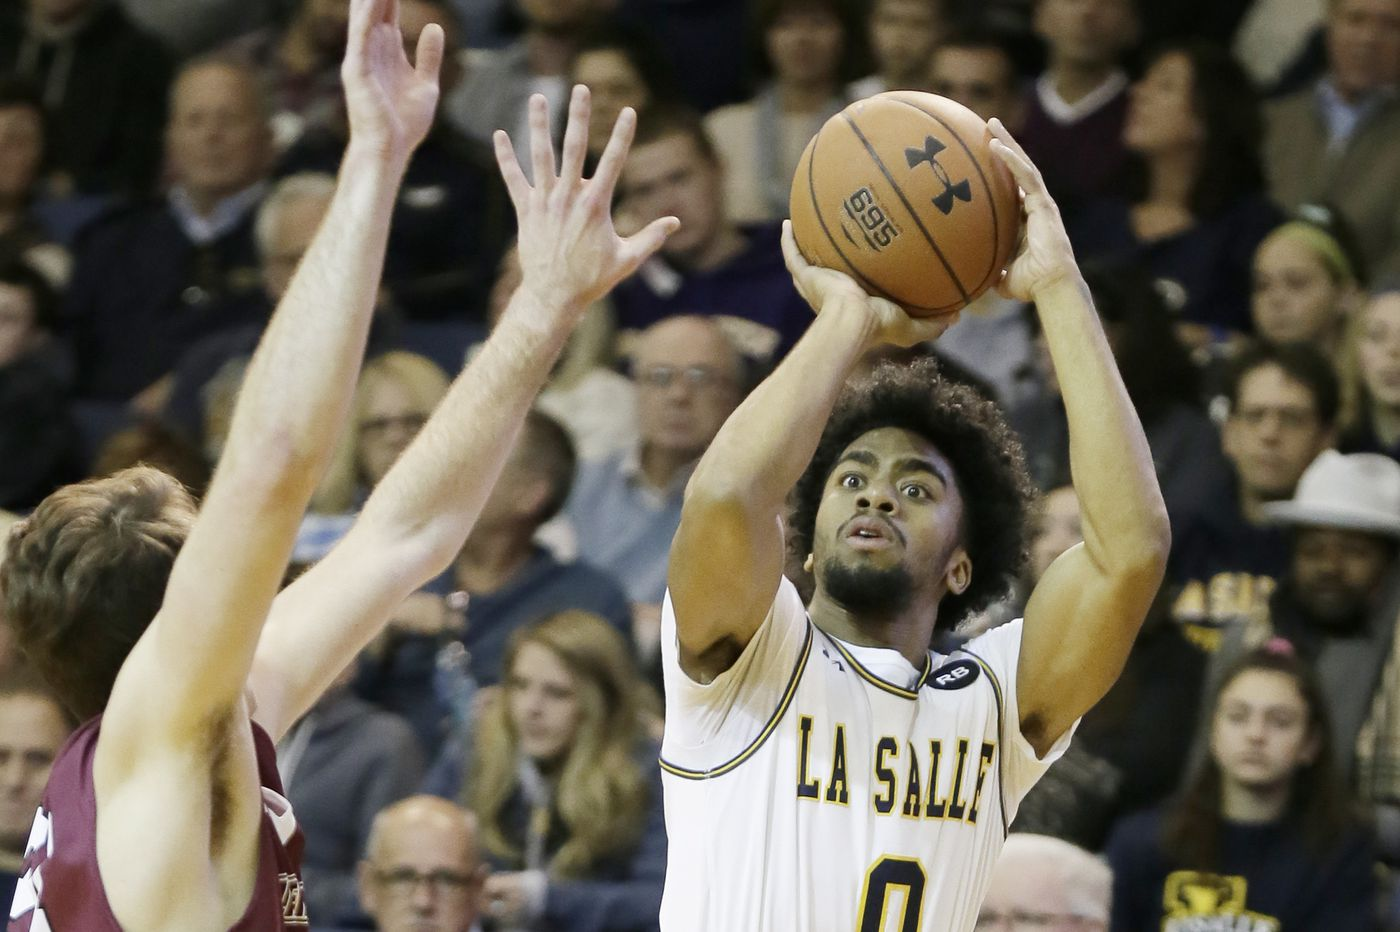 La Salle falls to Lafayette despite Pookie Powell's 26-point effort